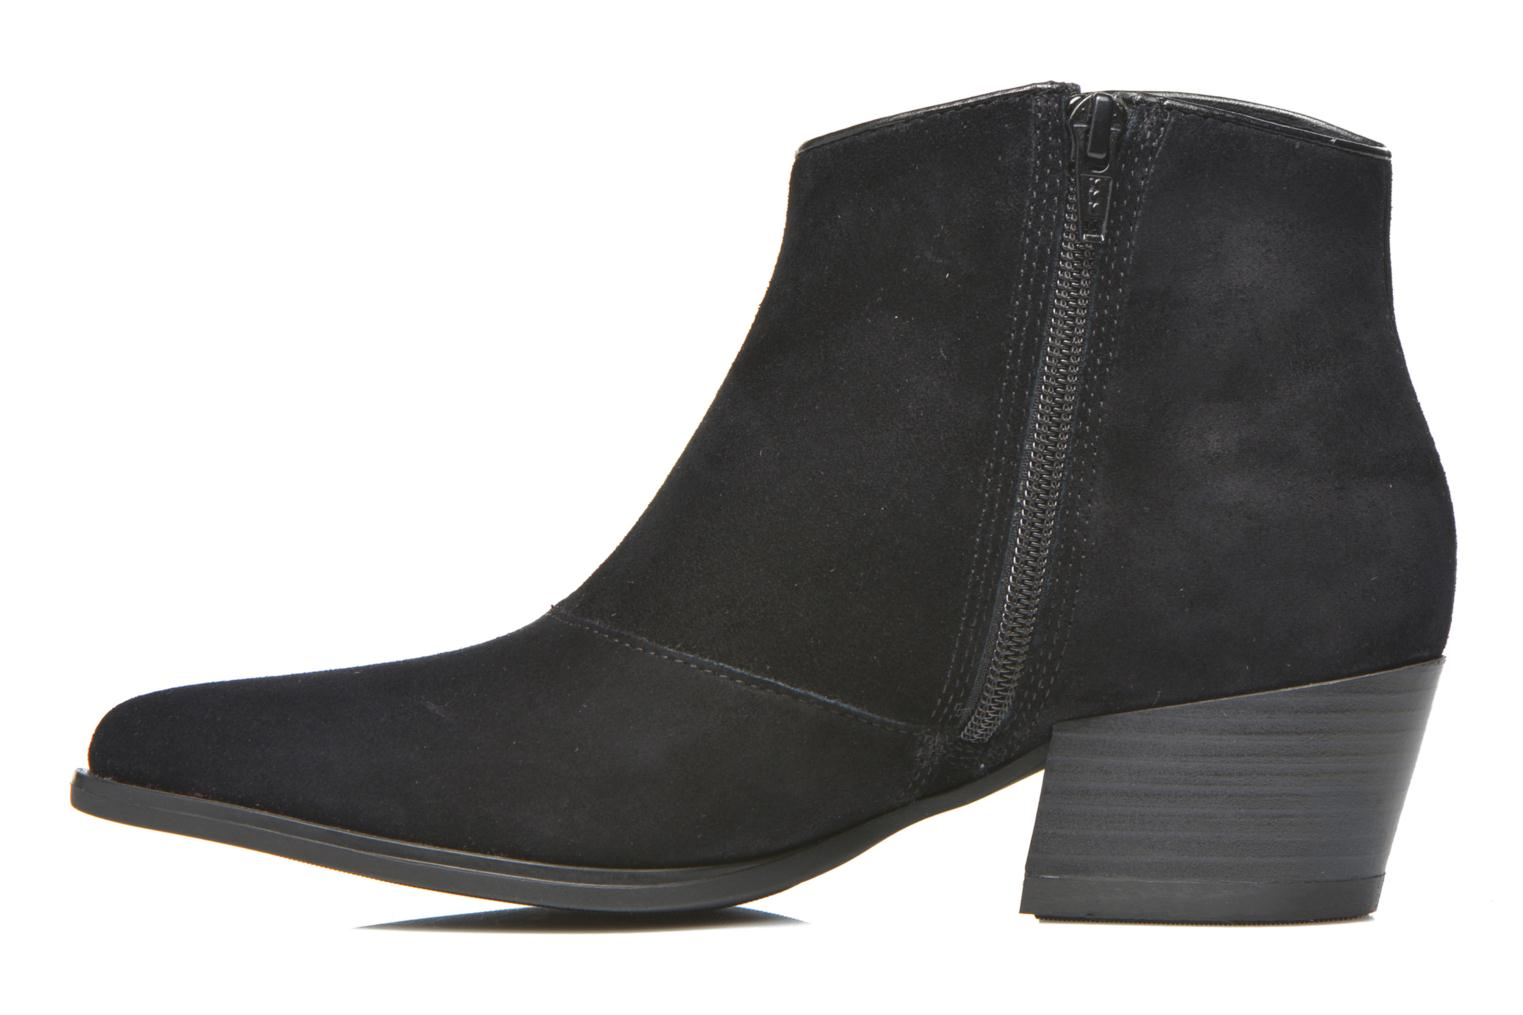 Bottines et boots Vagabond Shoemakers MANDY 4214-140 Noir vue face